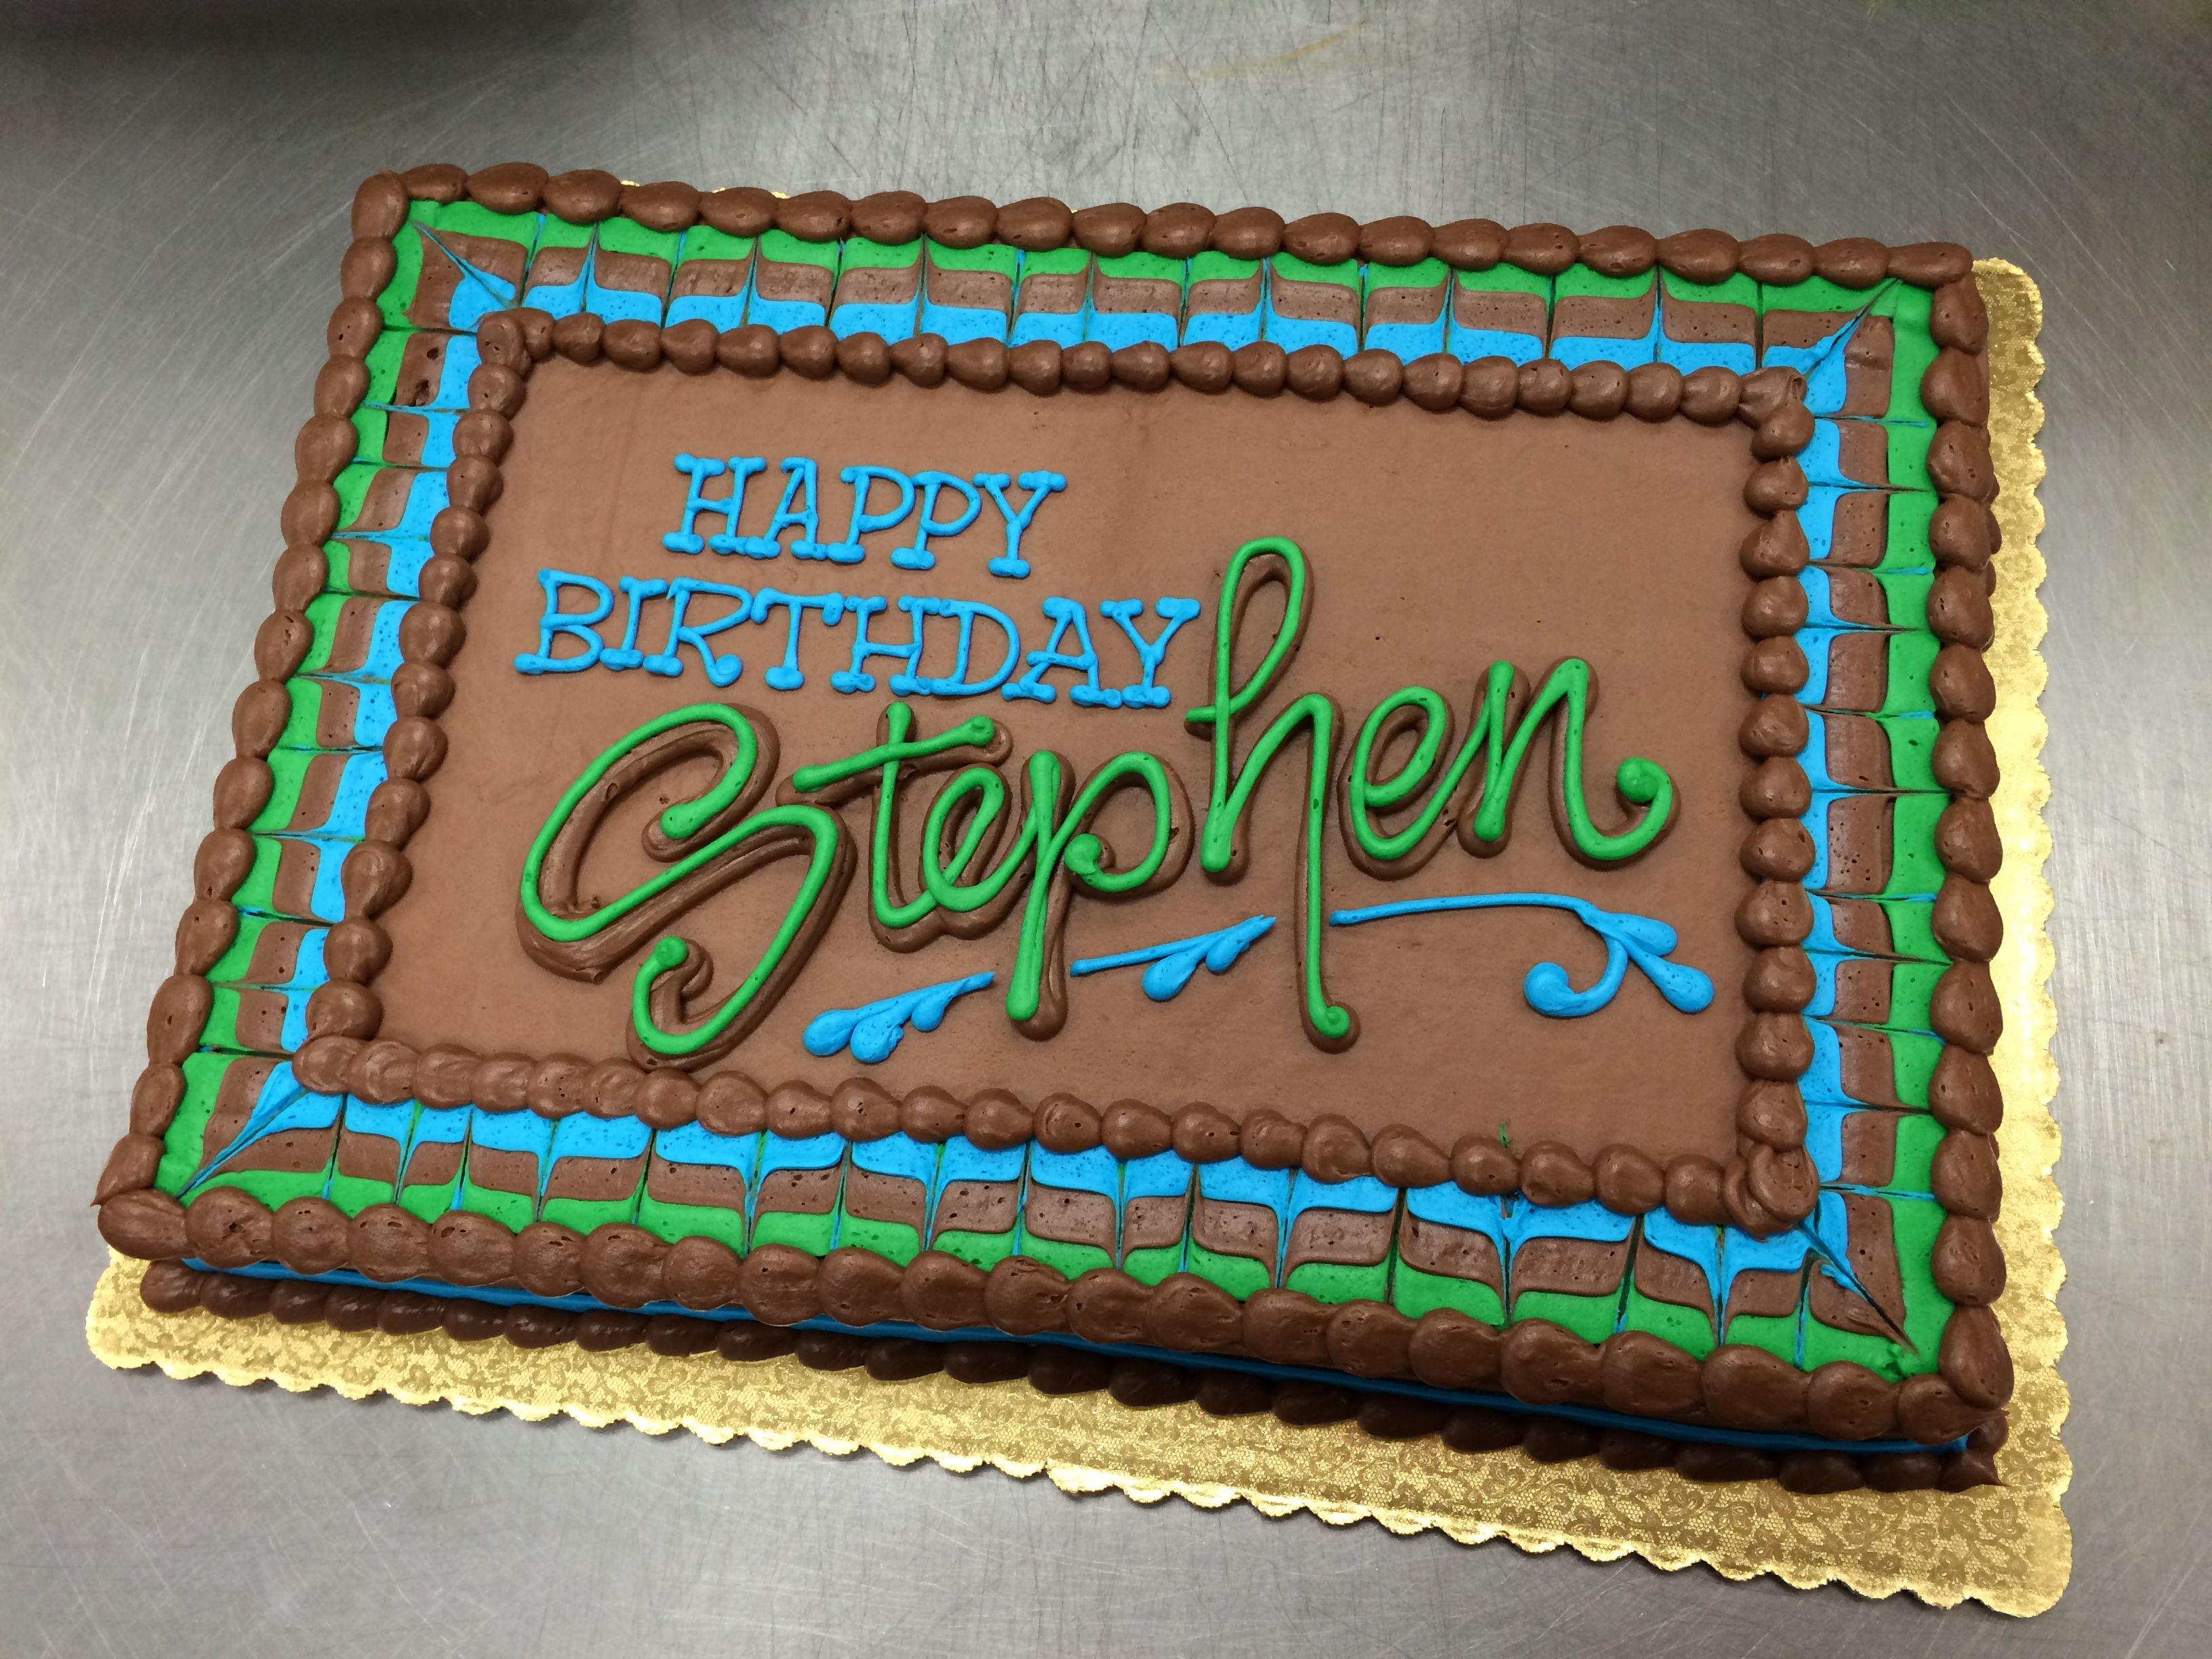 Strange Chocolate Masculine Sheet Cake By Stephanie Dillon Ls1 Hy Vee Personalised Birthday Cards Veneteletsinfo